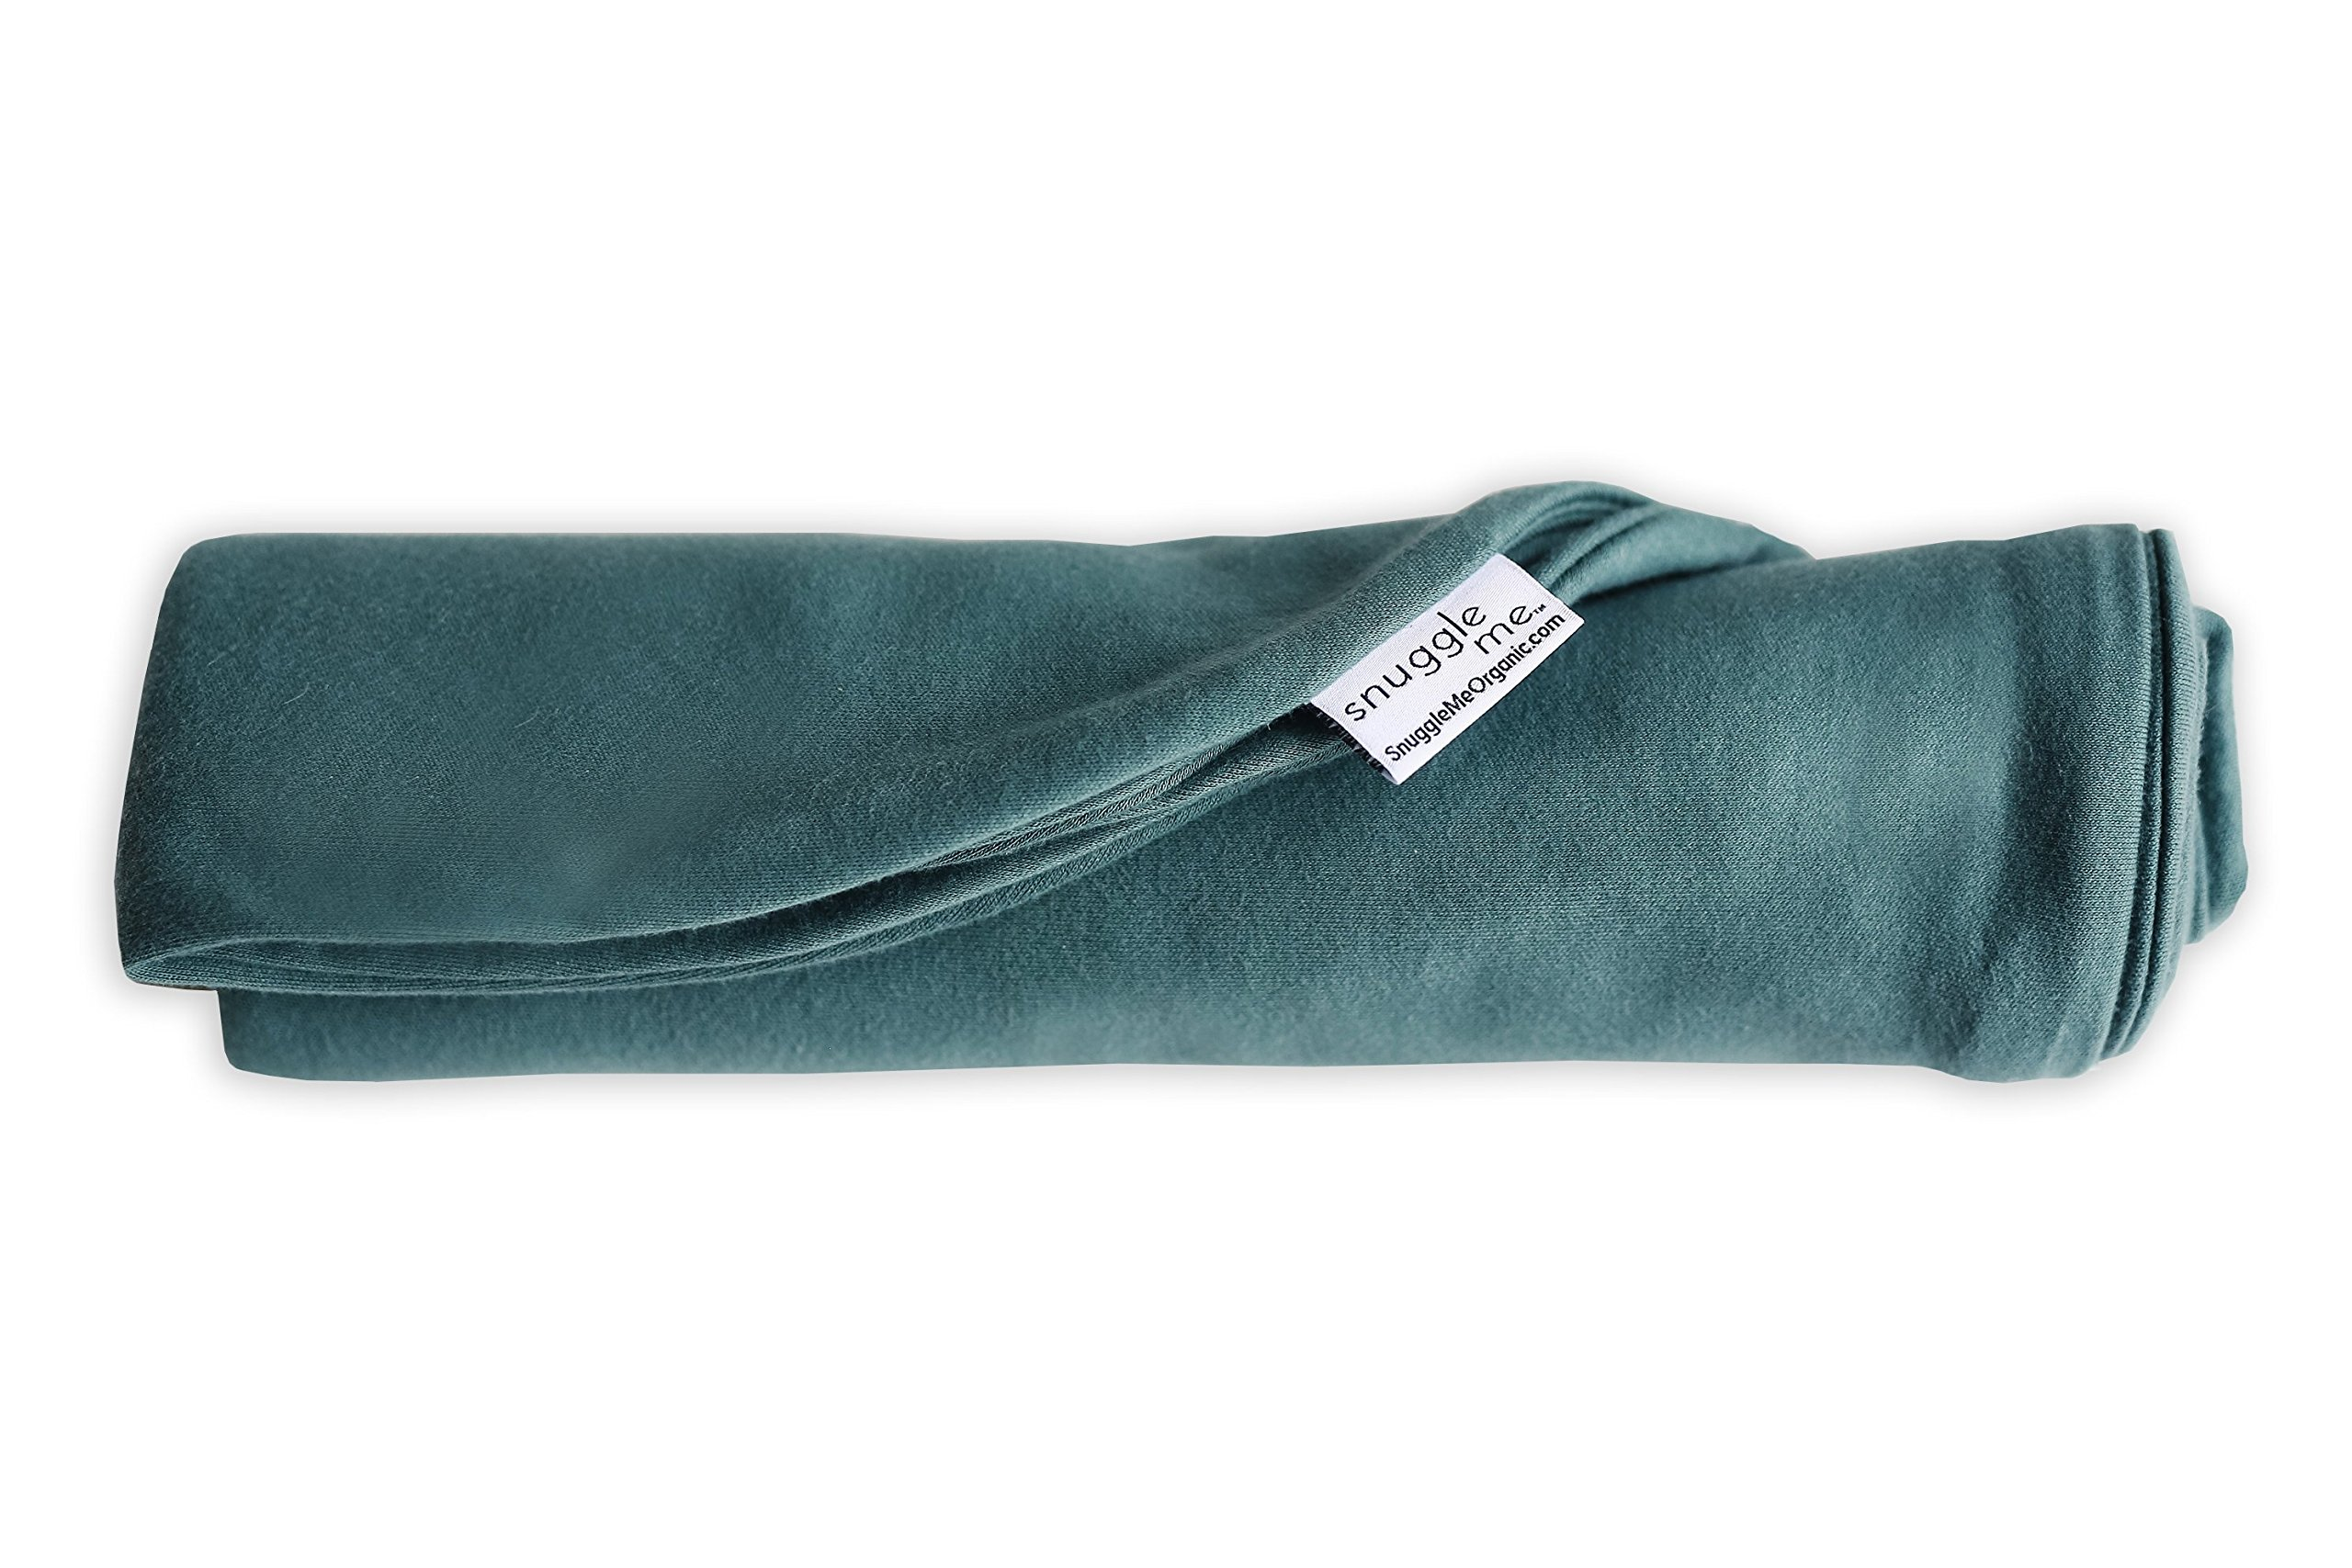 Snuggle Me Extra Organic Cotton Cover for the Snuggle Me Infant Padded Loungers with Center Sling Moss